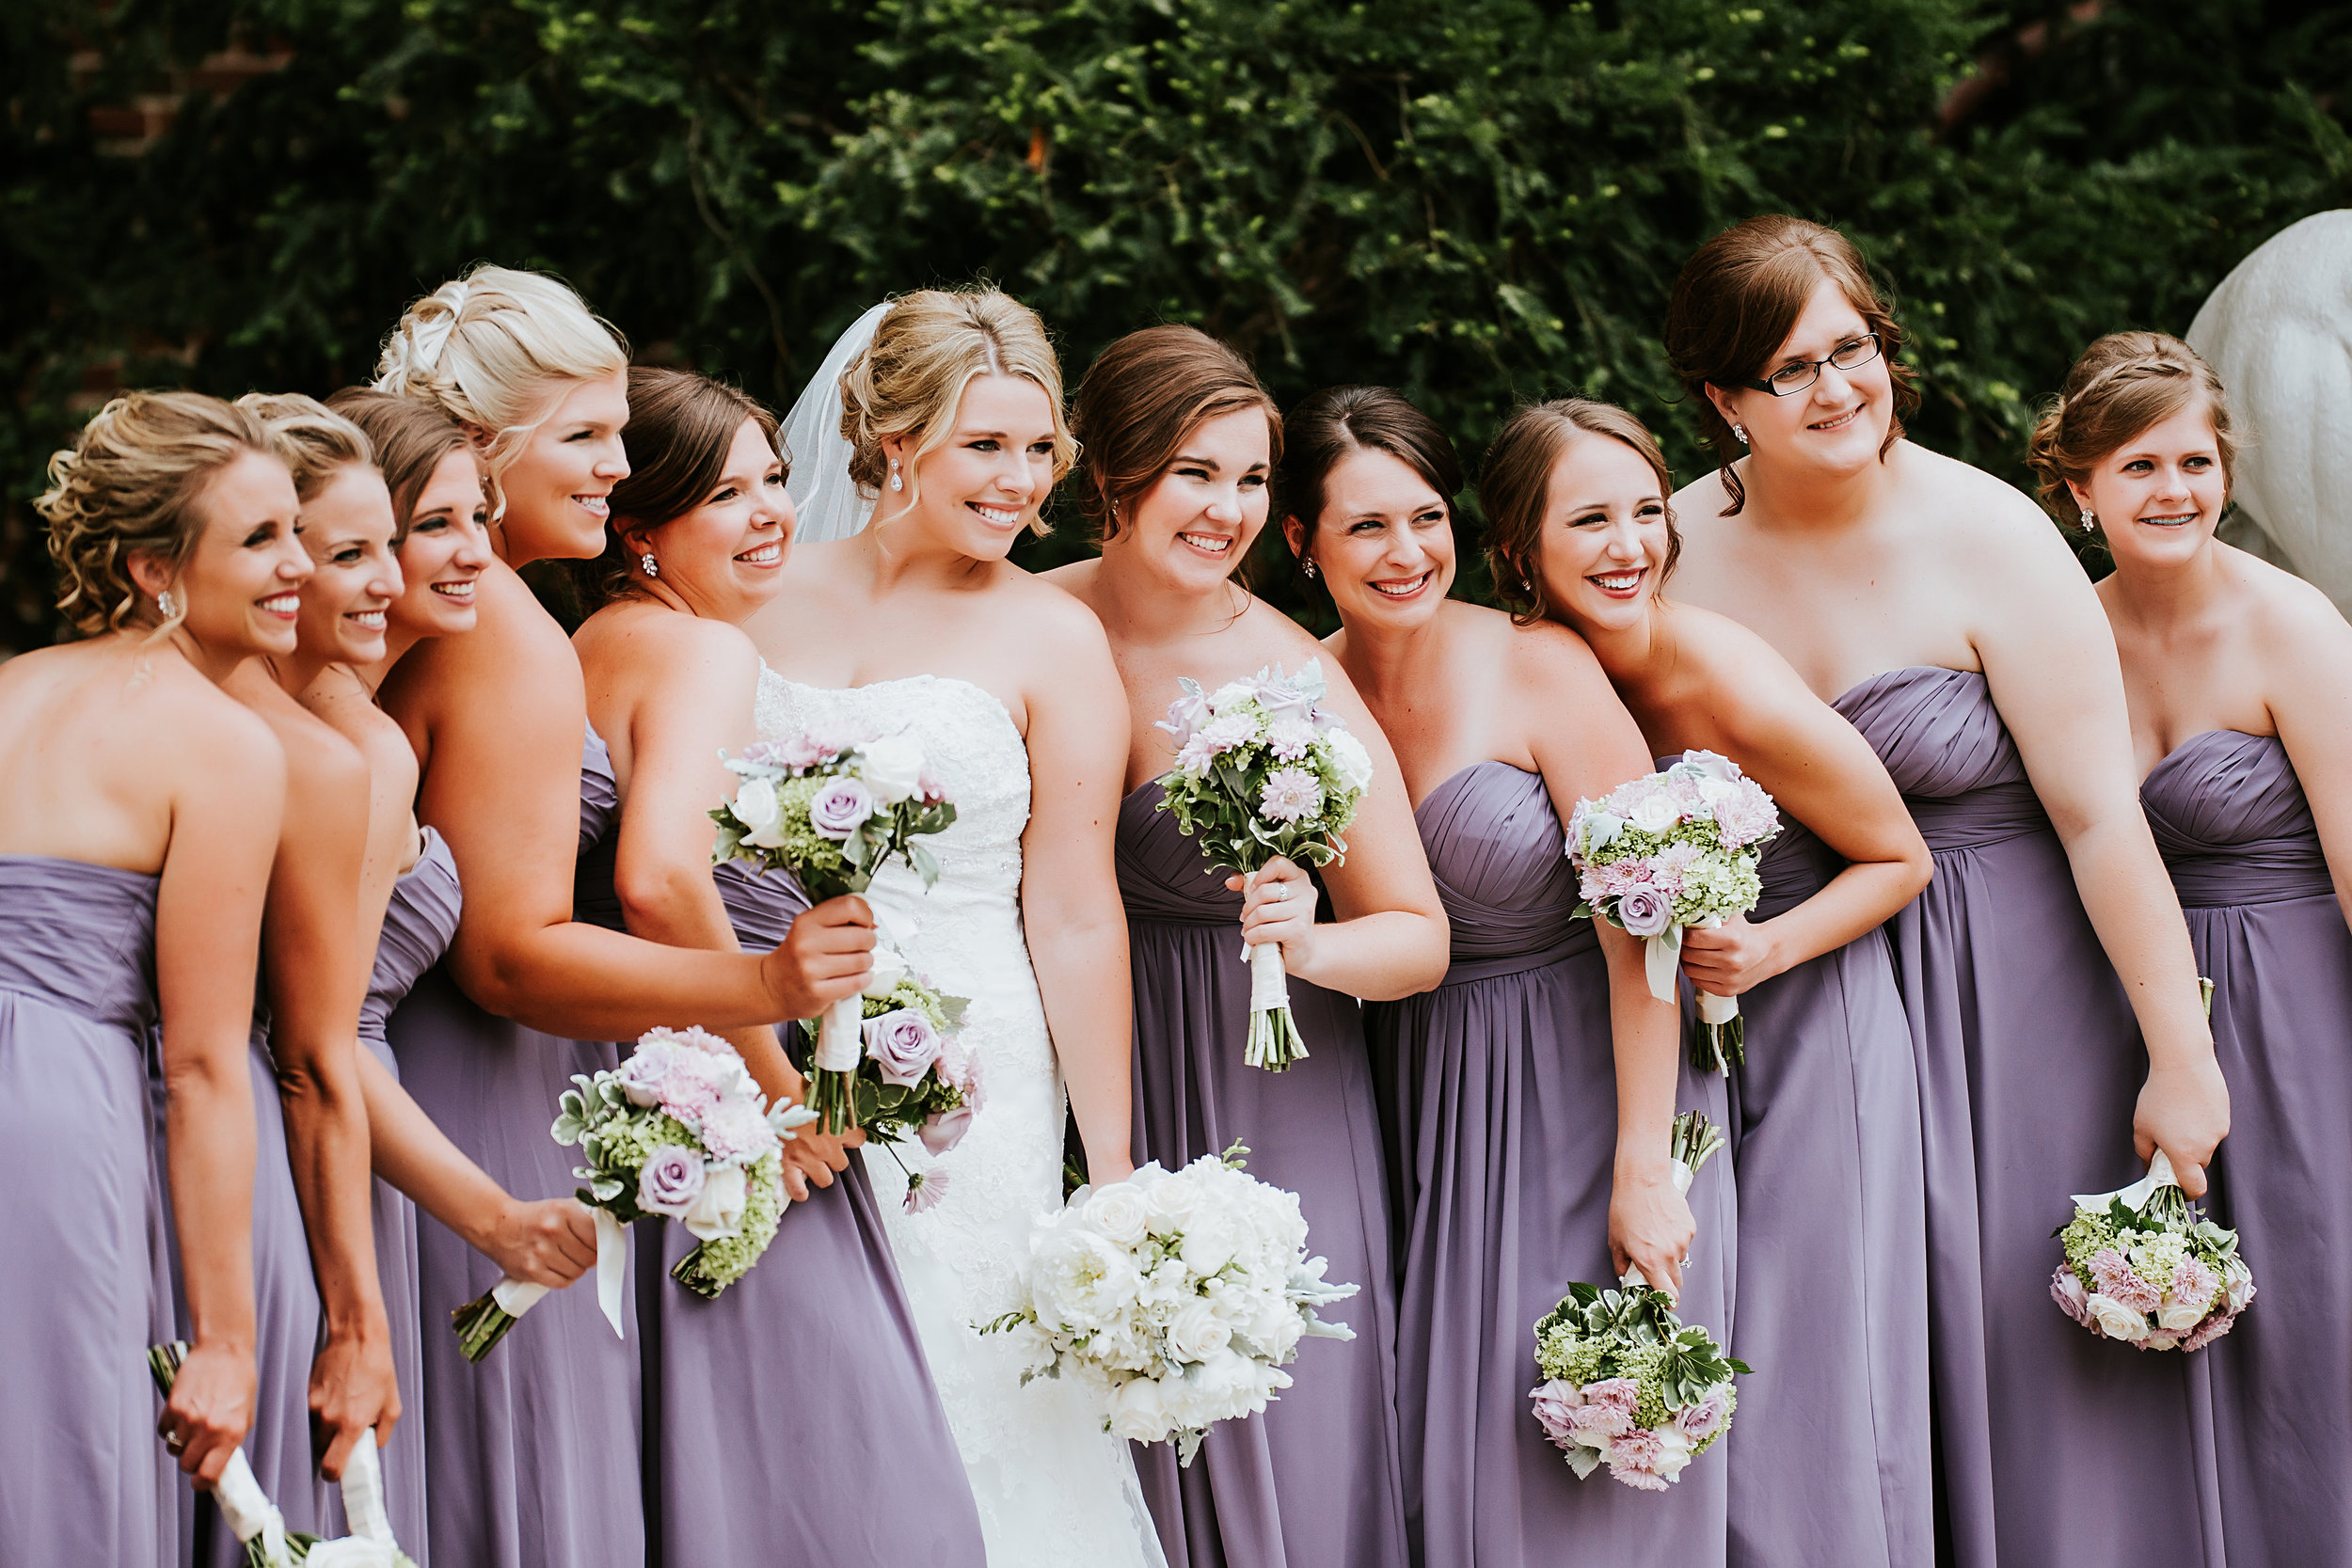 Look at those amazing flowers! This is such a beautiful photo of the bridal party!